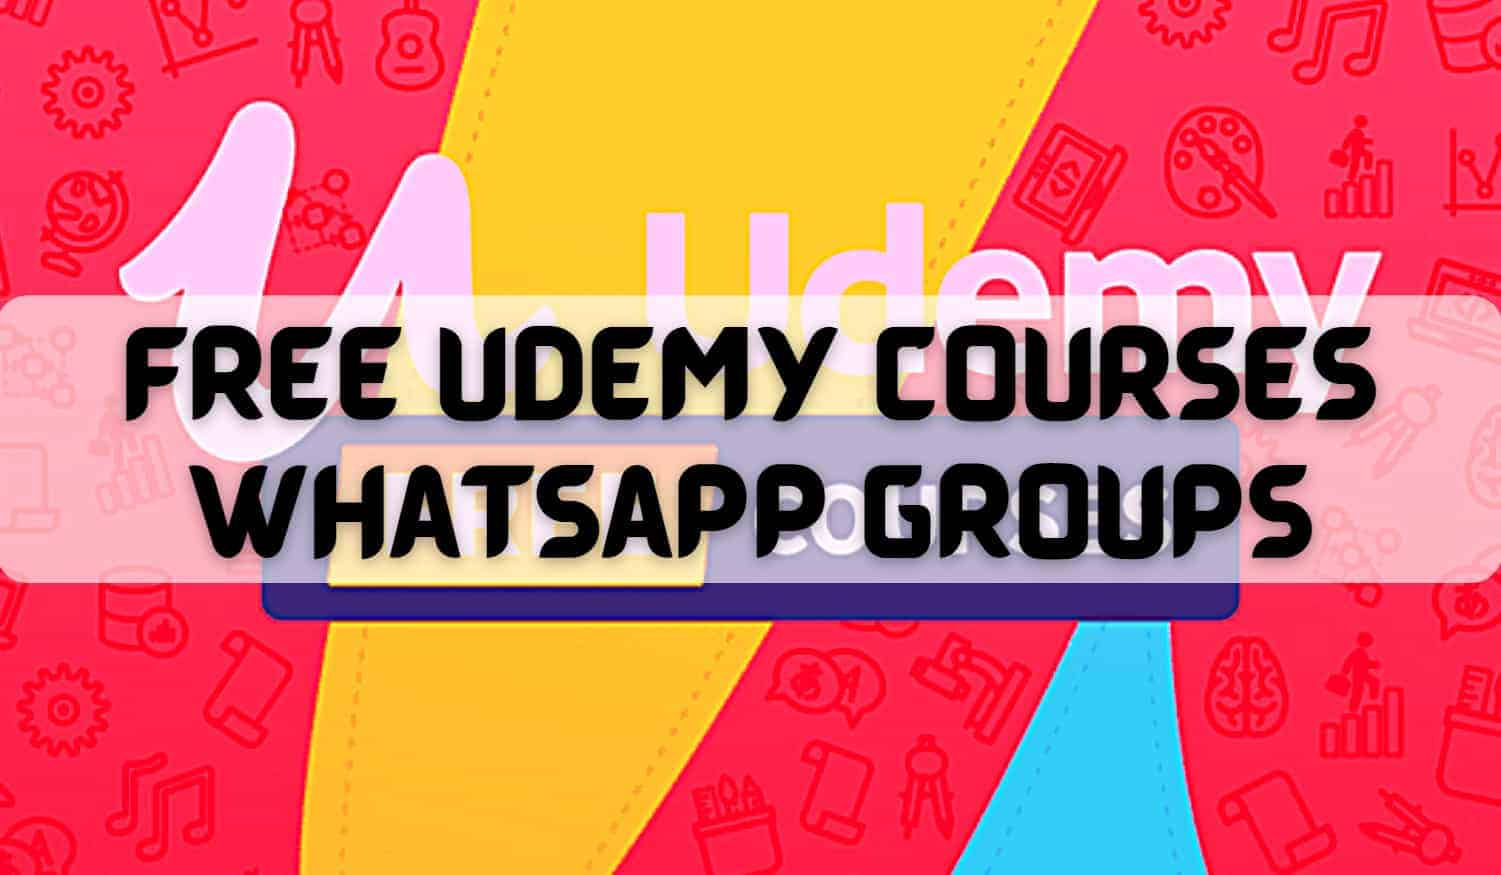 Free Udemy Courses Whatsapp Group Links